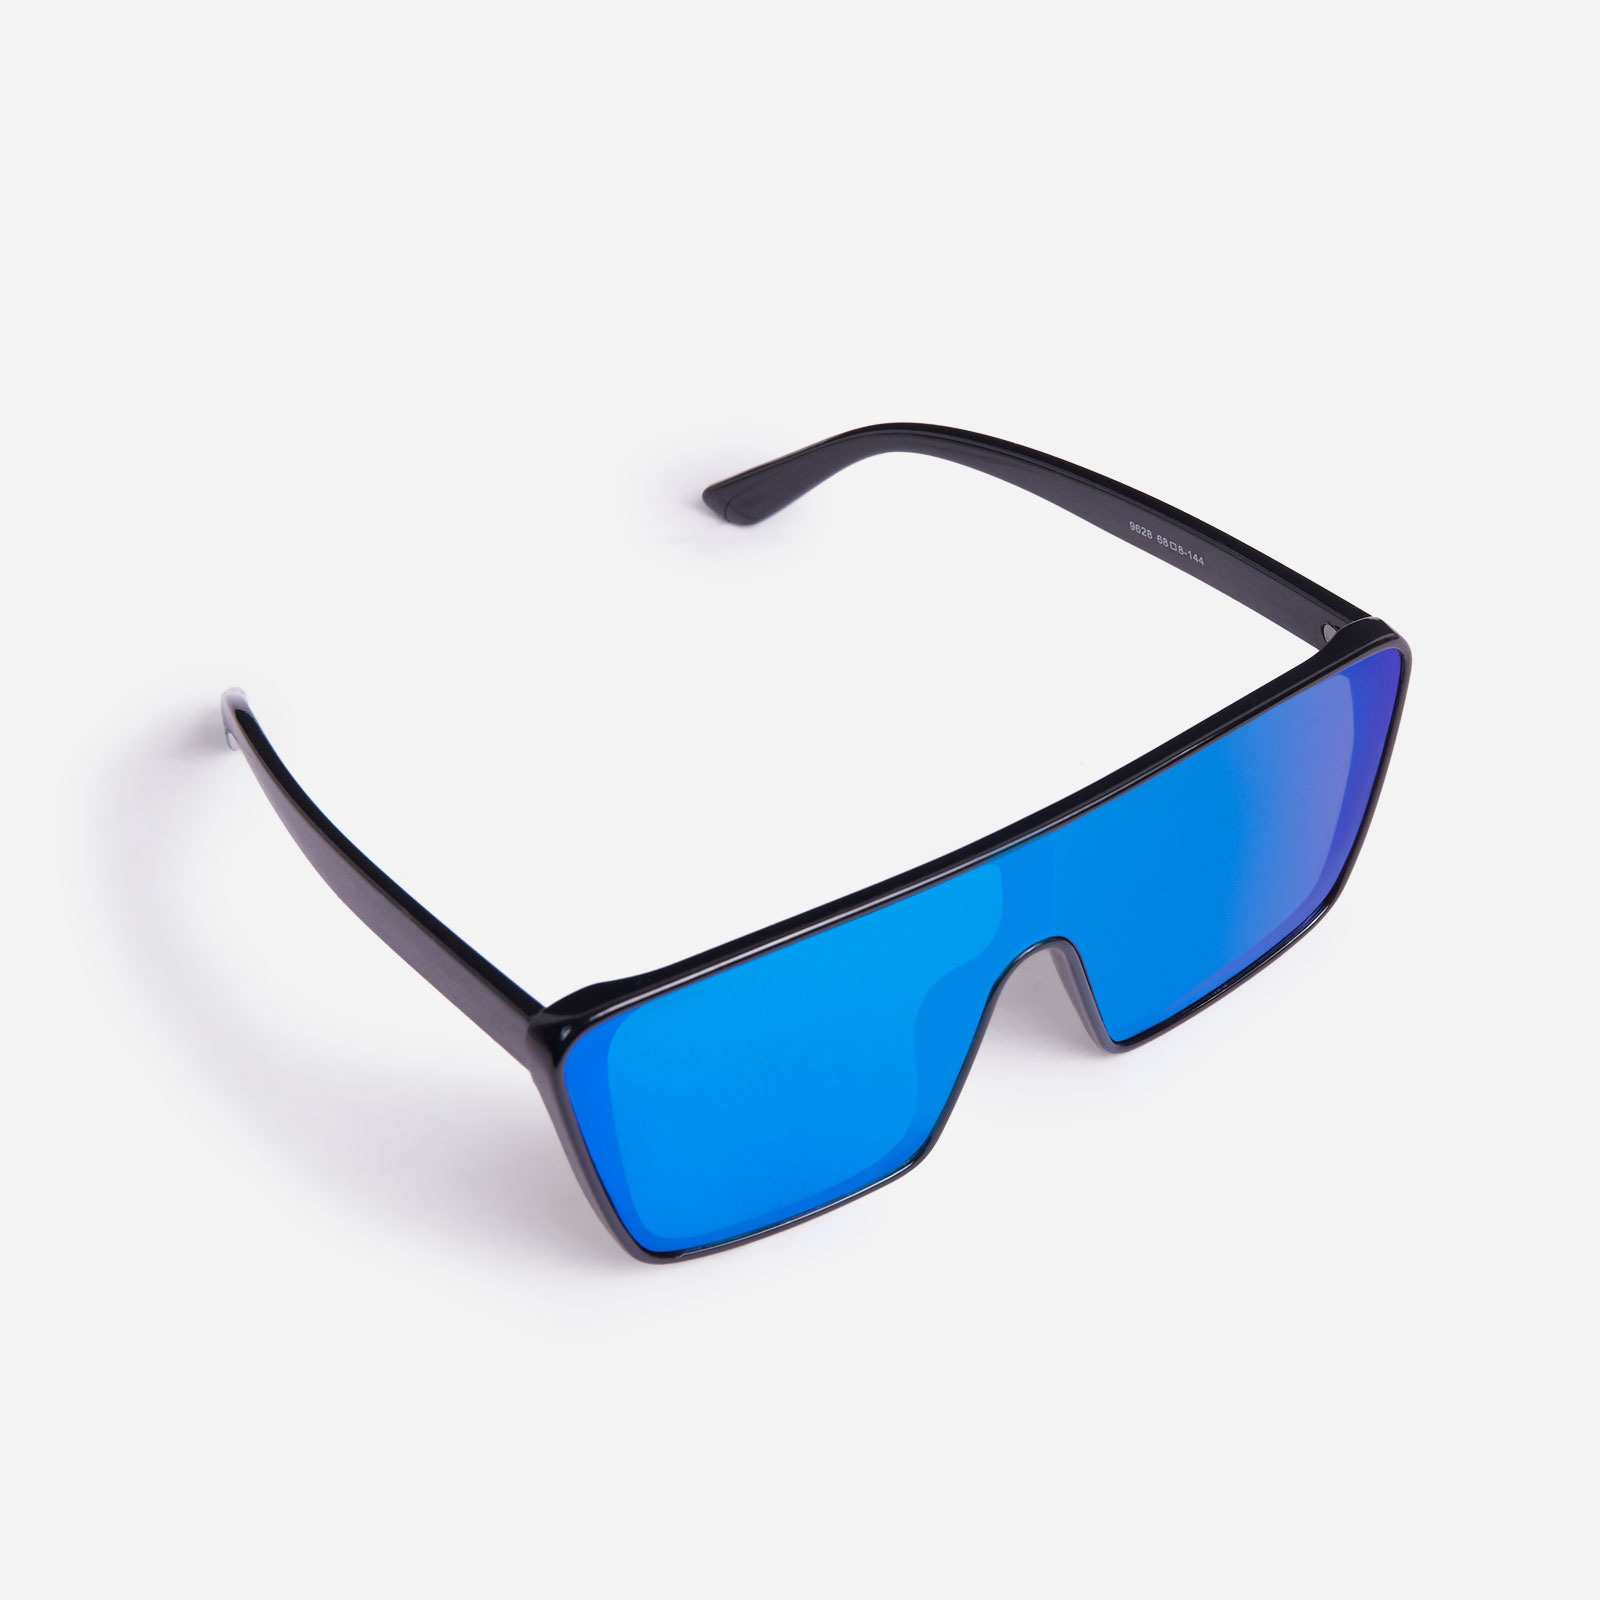 Sporty Oversized Visor Sunglasses In Black